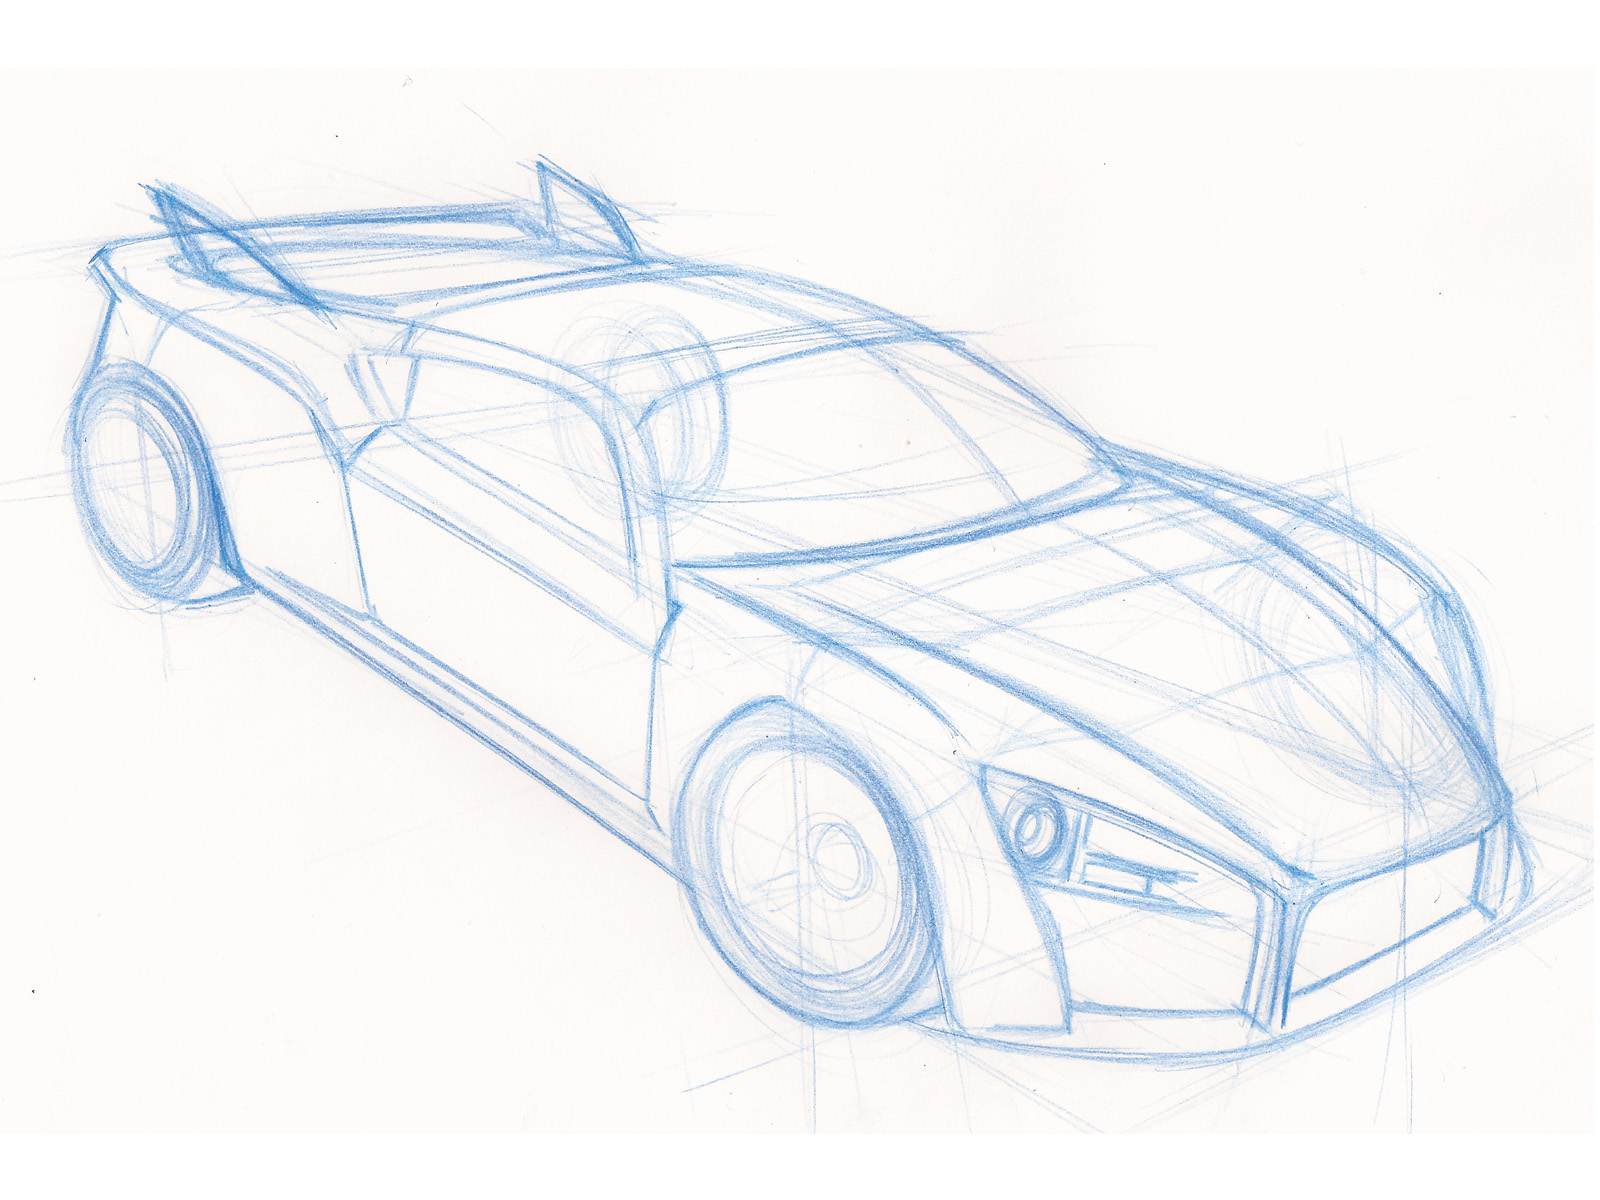 1600x1200 Pencil Drawings Of Cars Cars Easy Pencil Drawings How To Draw Cool